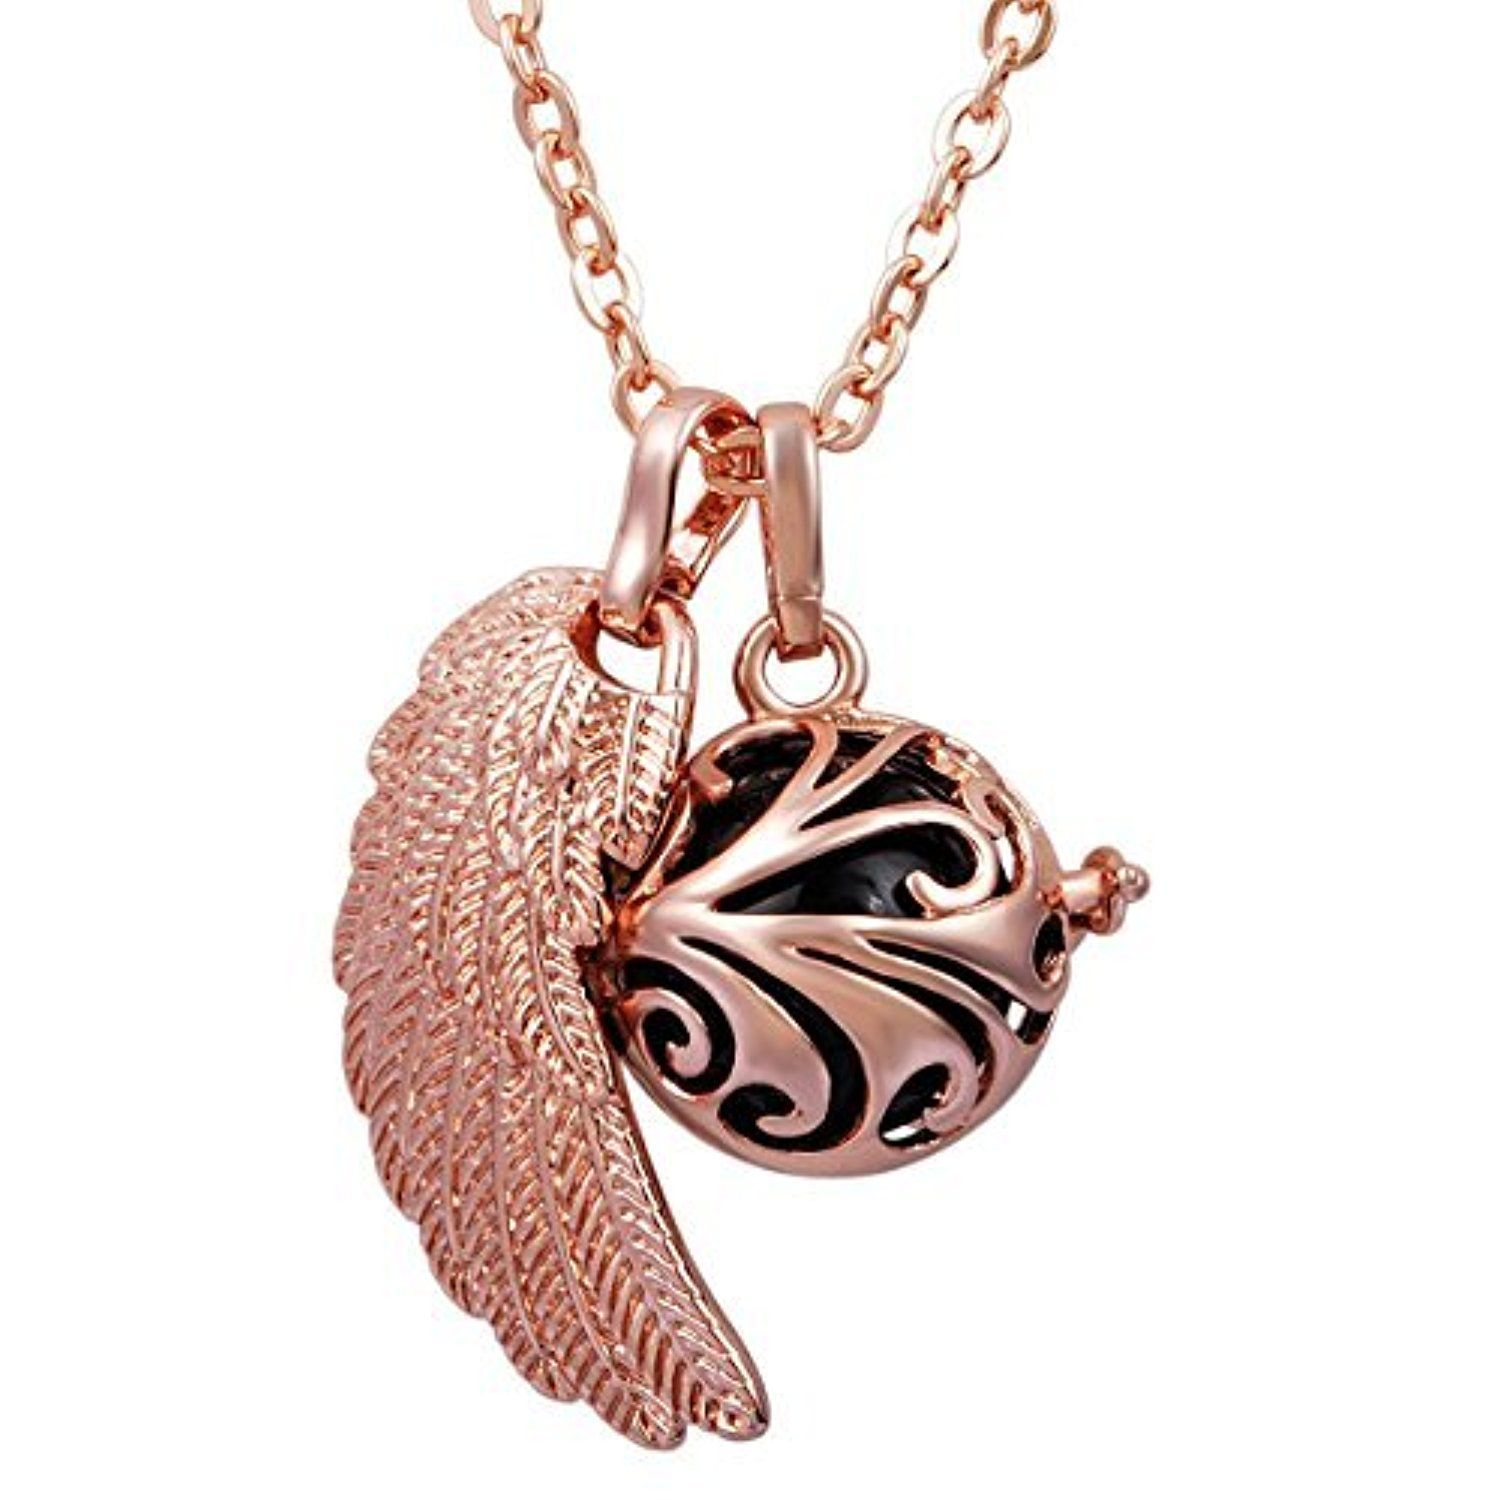 Eudora Rose Gold Angel Wing Chain Necklace Pendant for Women Lucky